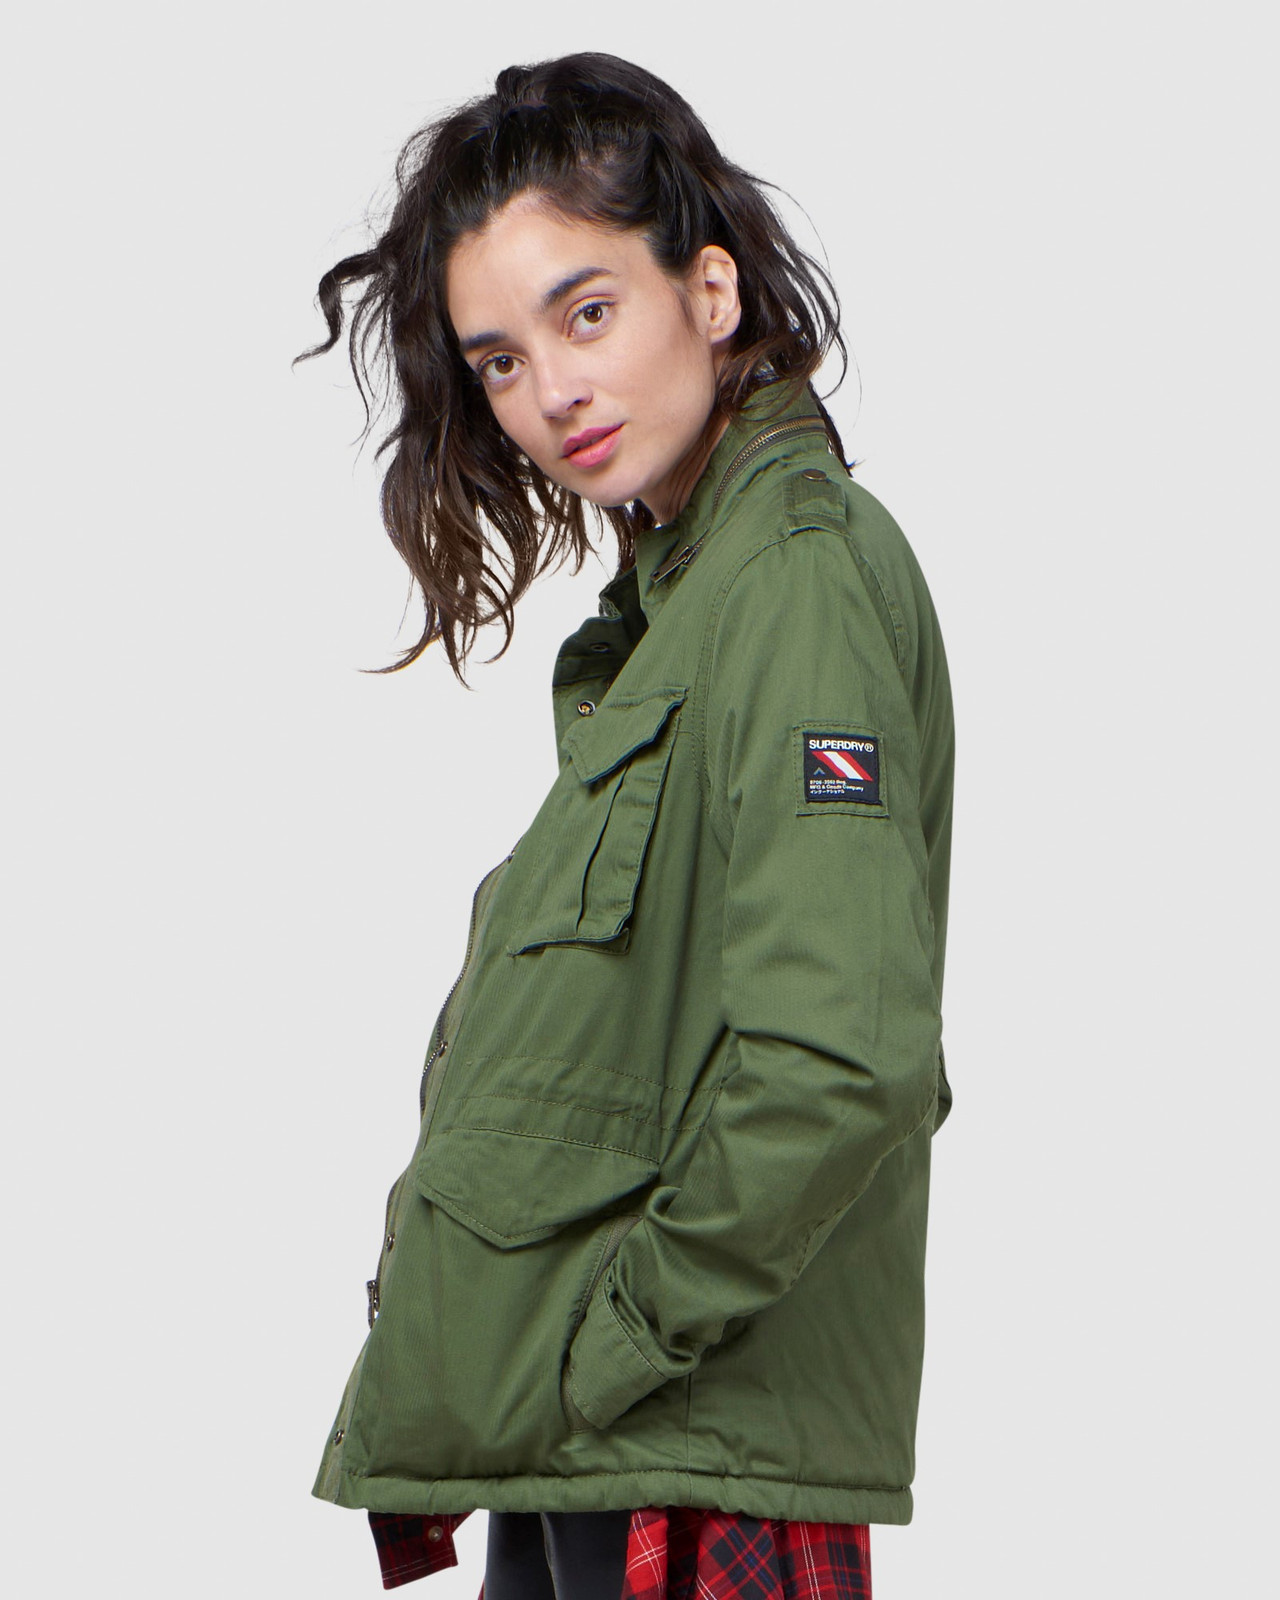 Superdry Womens CLASSIC RECRUIT BORG JACKET Green Military Jackets 2